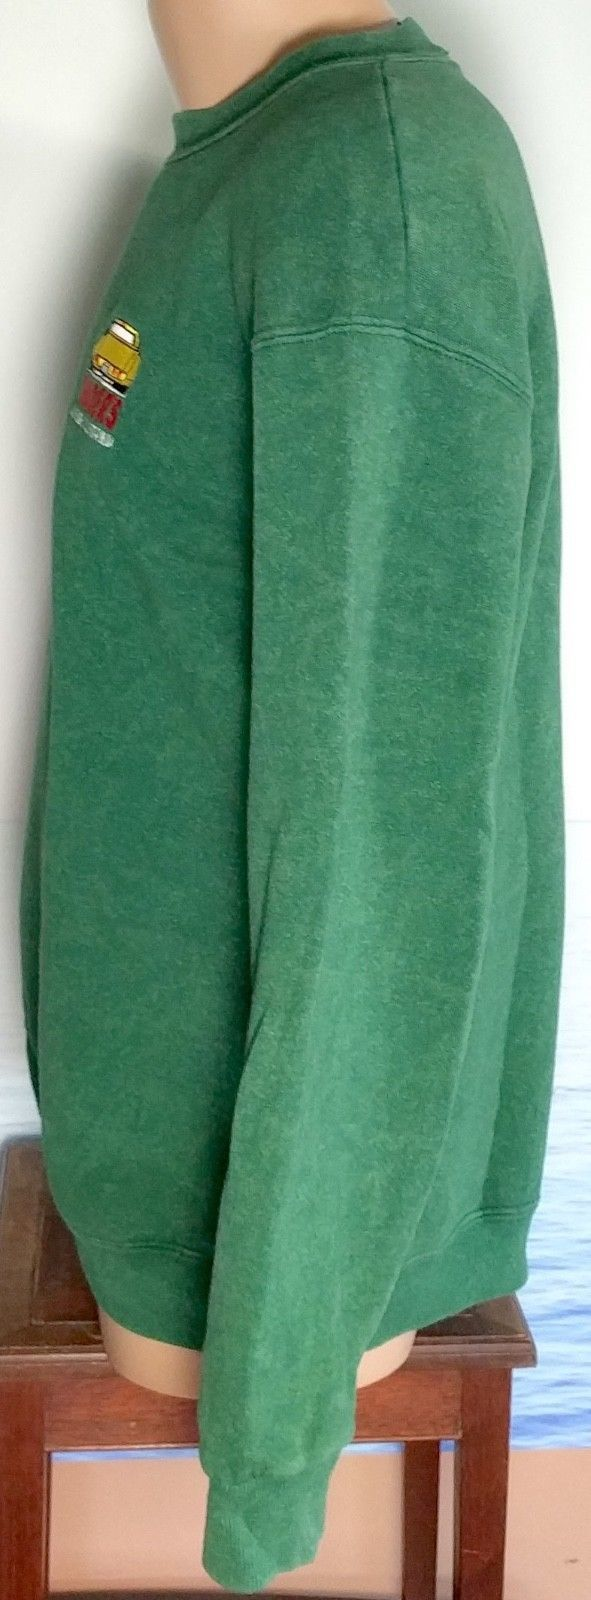 Vintage LEE Made in USA TRADERS L Southern California Cars Sweatshirt Mens Green image 3